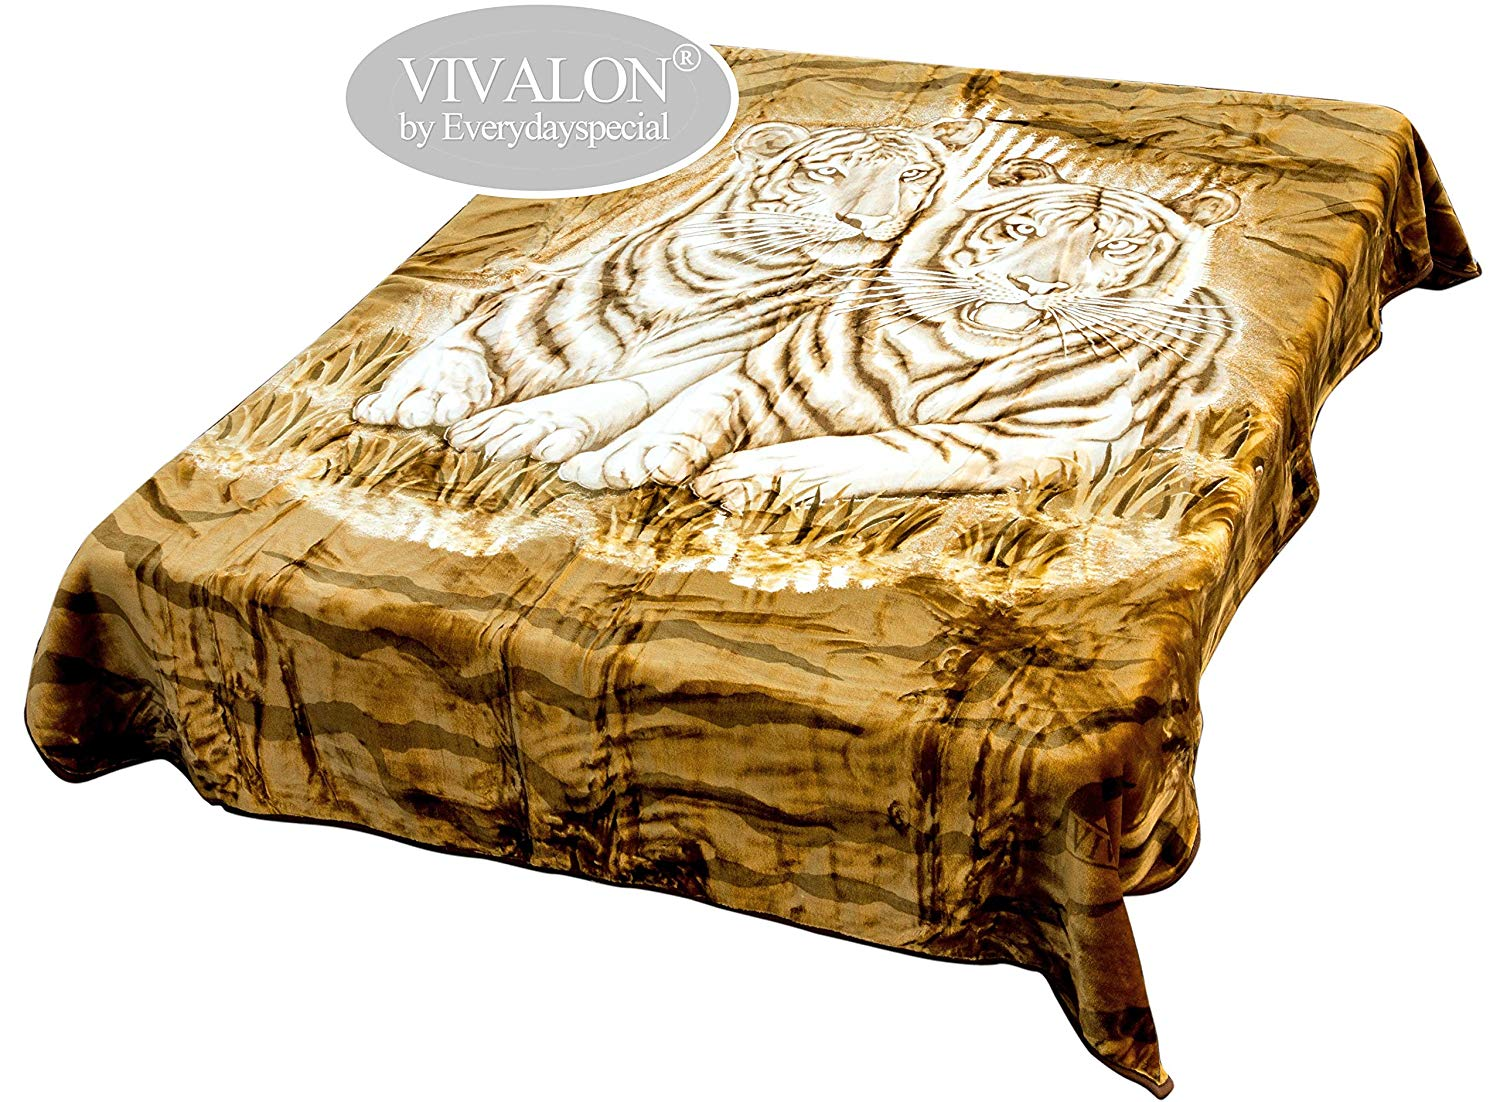 VIVALON Ultra Silky Soft Heavy Duty Quality Korean Mink Printed Brown White Tiger Reversible Blanket King Size